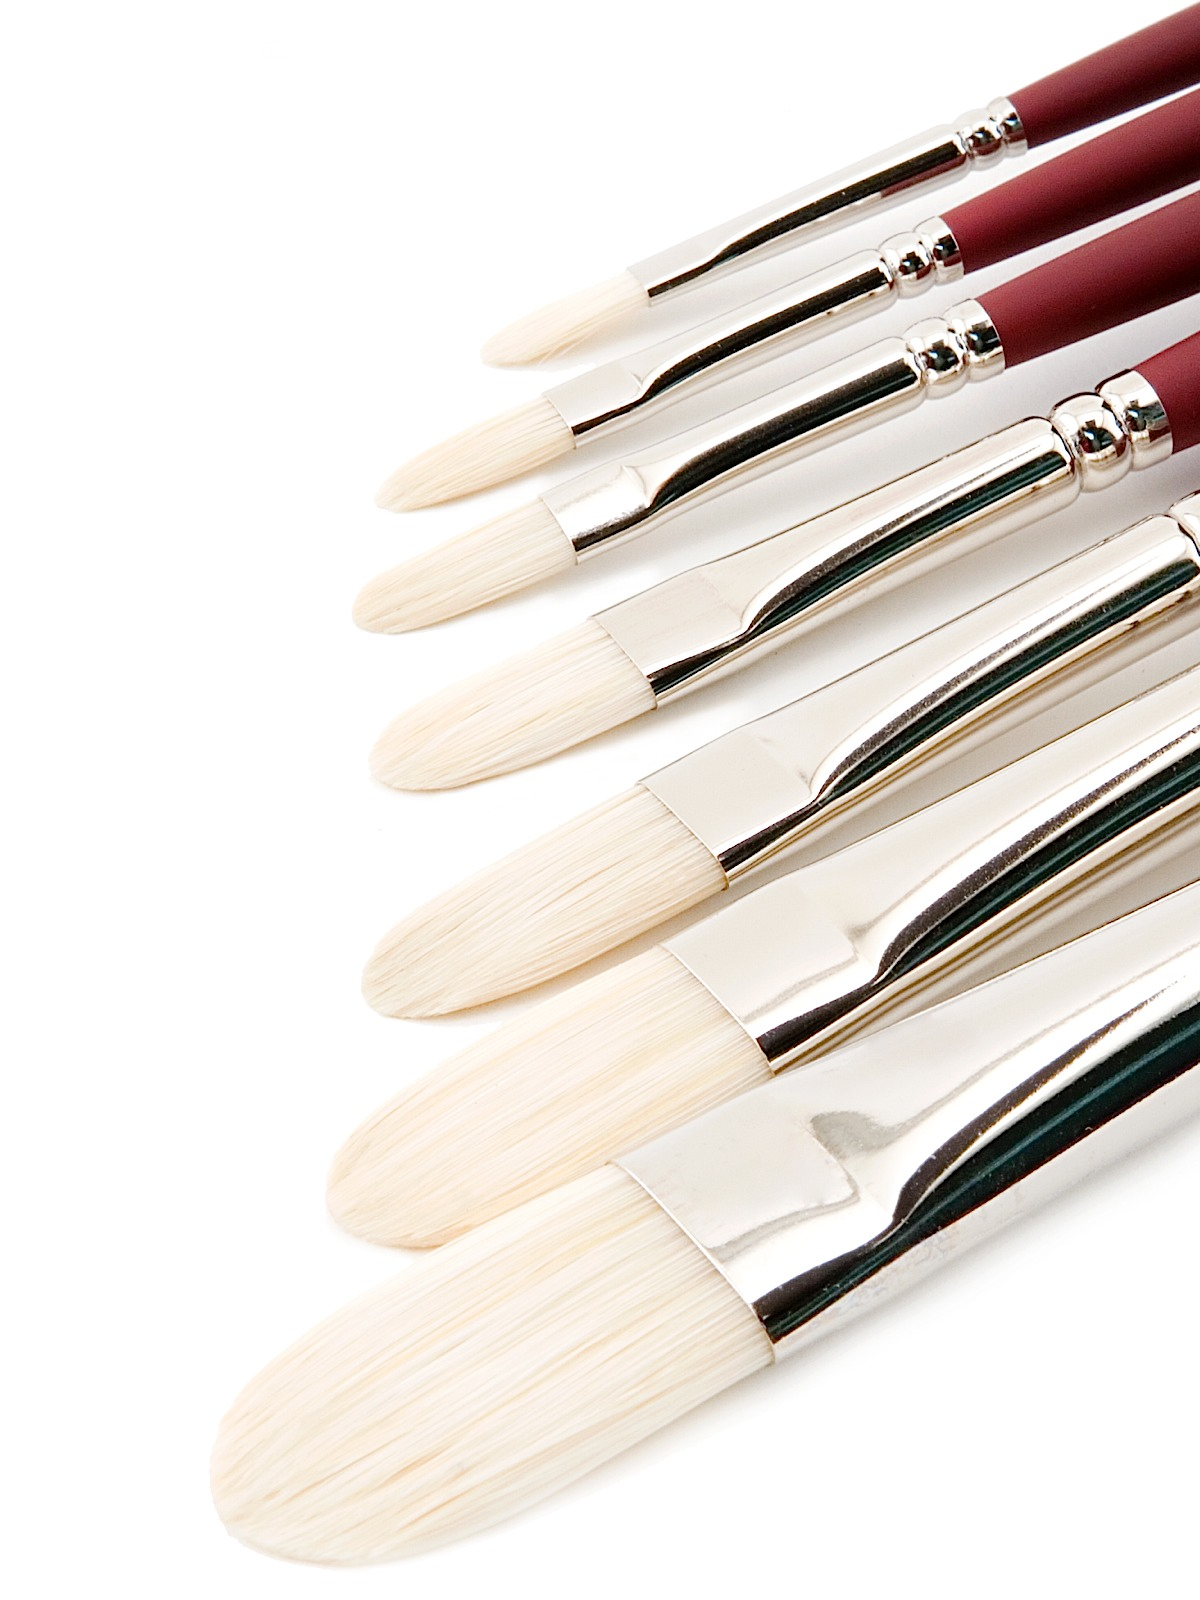 Silverstone Series Hog Bristle Brushes